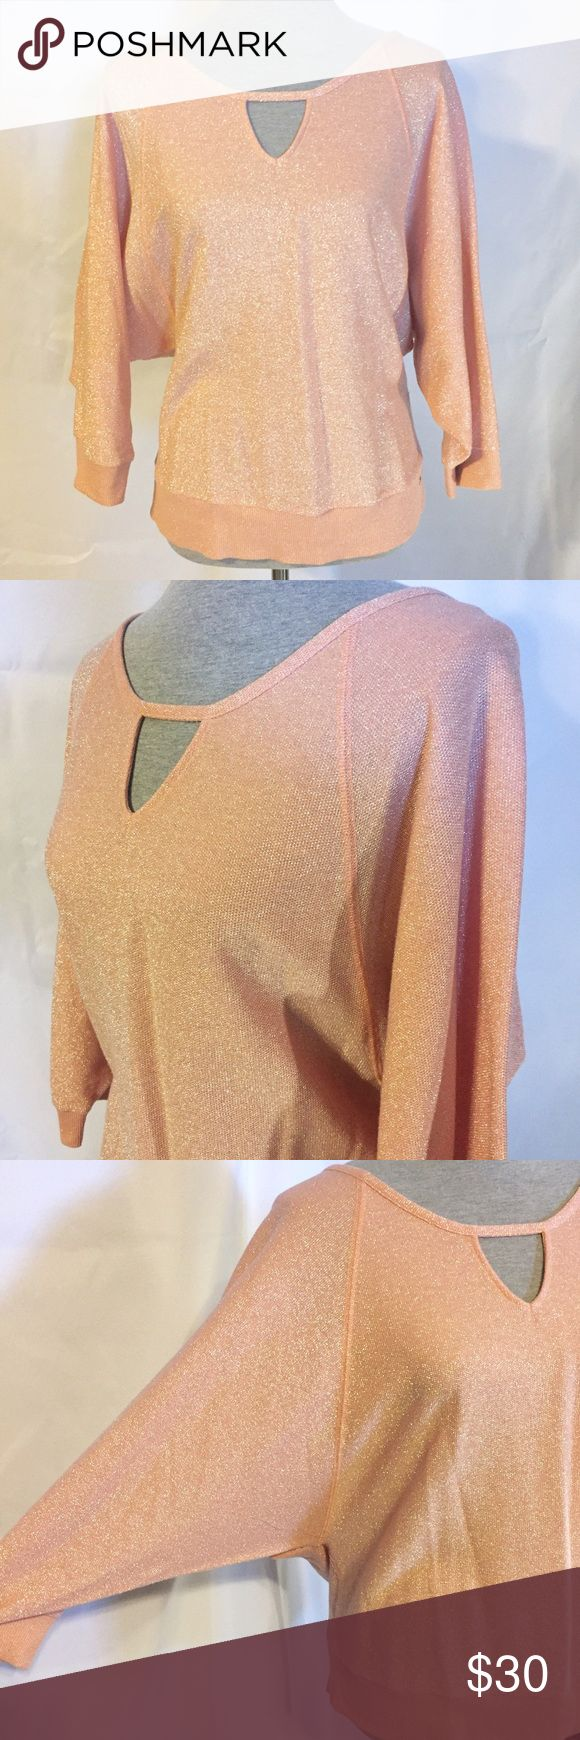 """Guess Coral Metallic Dolman Batwing Sleeve Large Absolutely gorgeous metallic batwing dolman sleeve top from Guess! The color borders on a pretty coral peach. Only worn maybe once or twice it is in Excellent condition! Very forgiving and flattering on any figure type. 50% Cotton, 34% Polyester, and 16% Metallic. Measures 25"""" long from shoulder to hem. Size Large from Guess Guess Tops"""